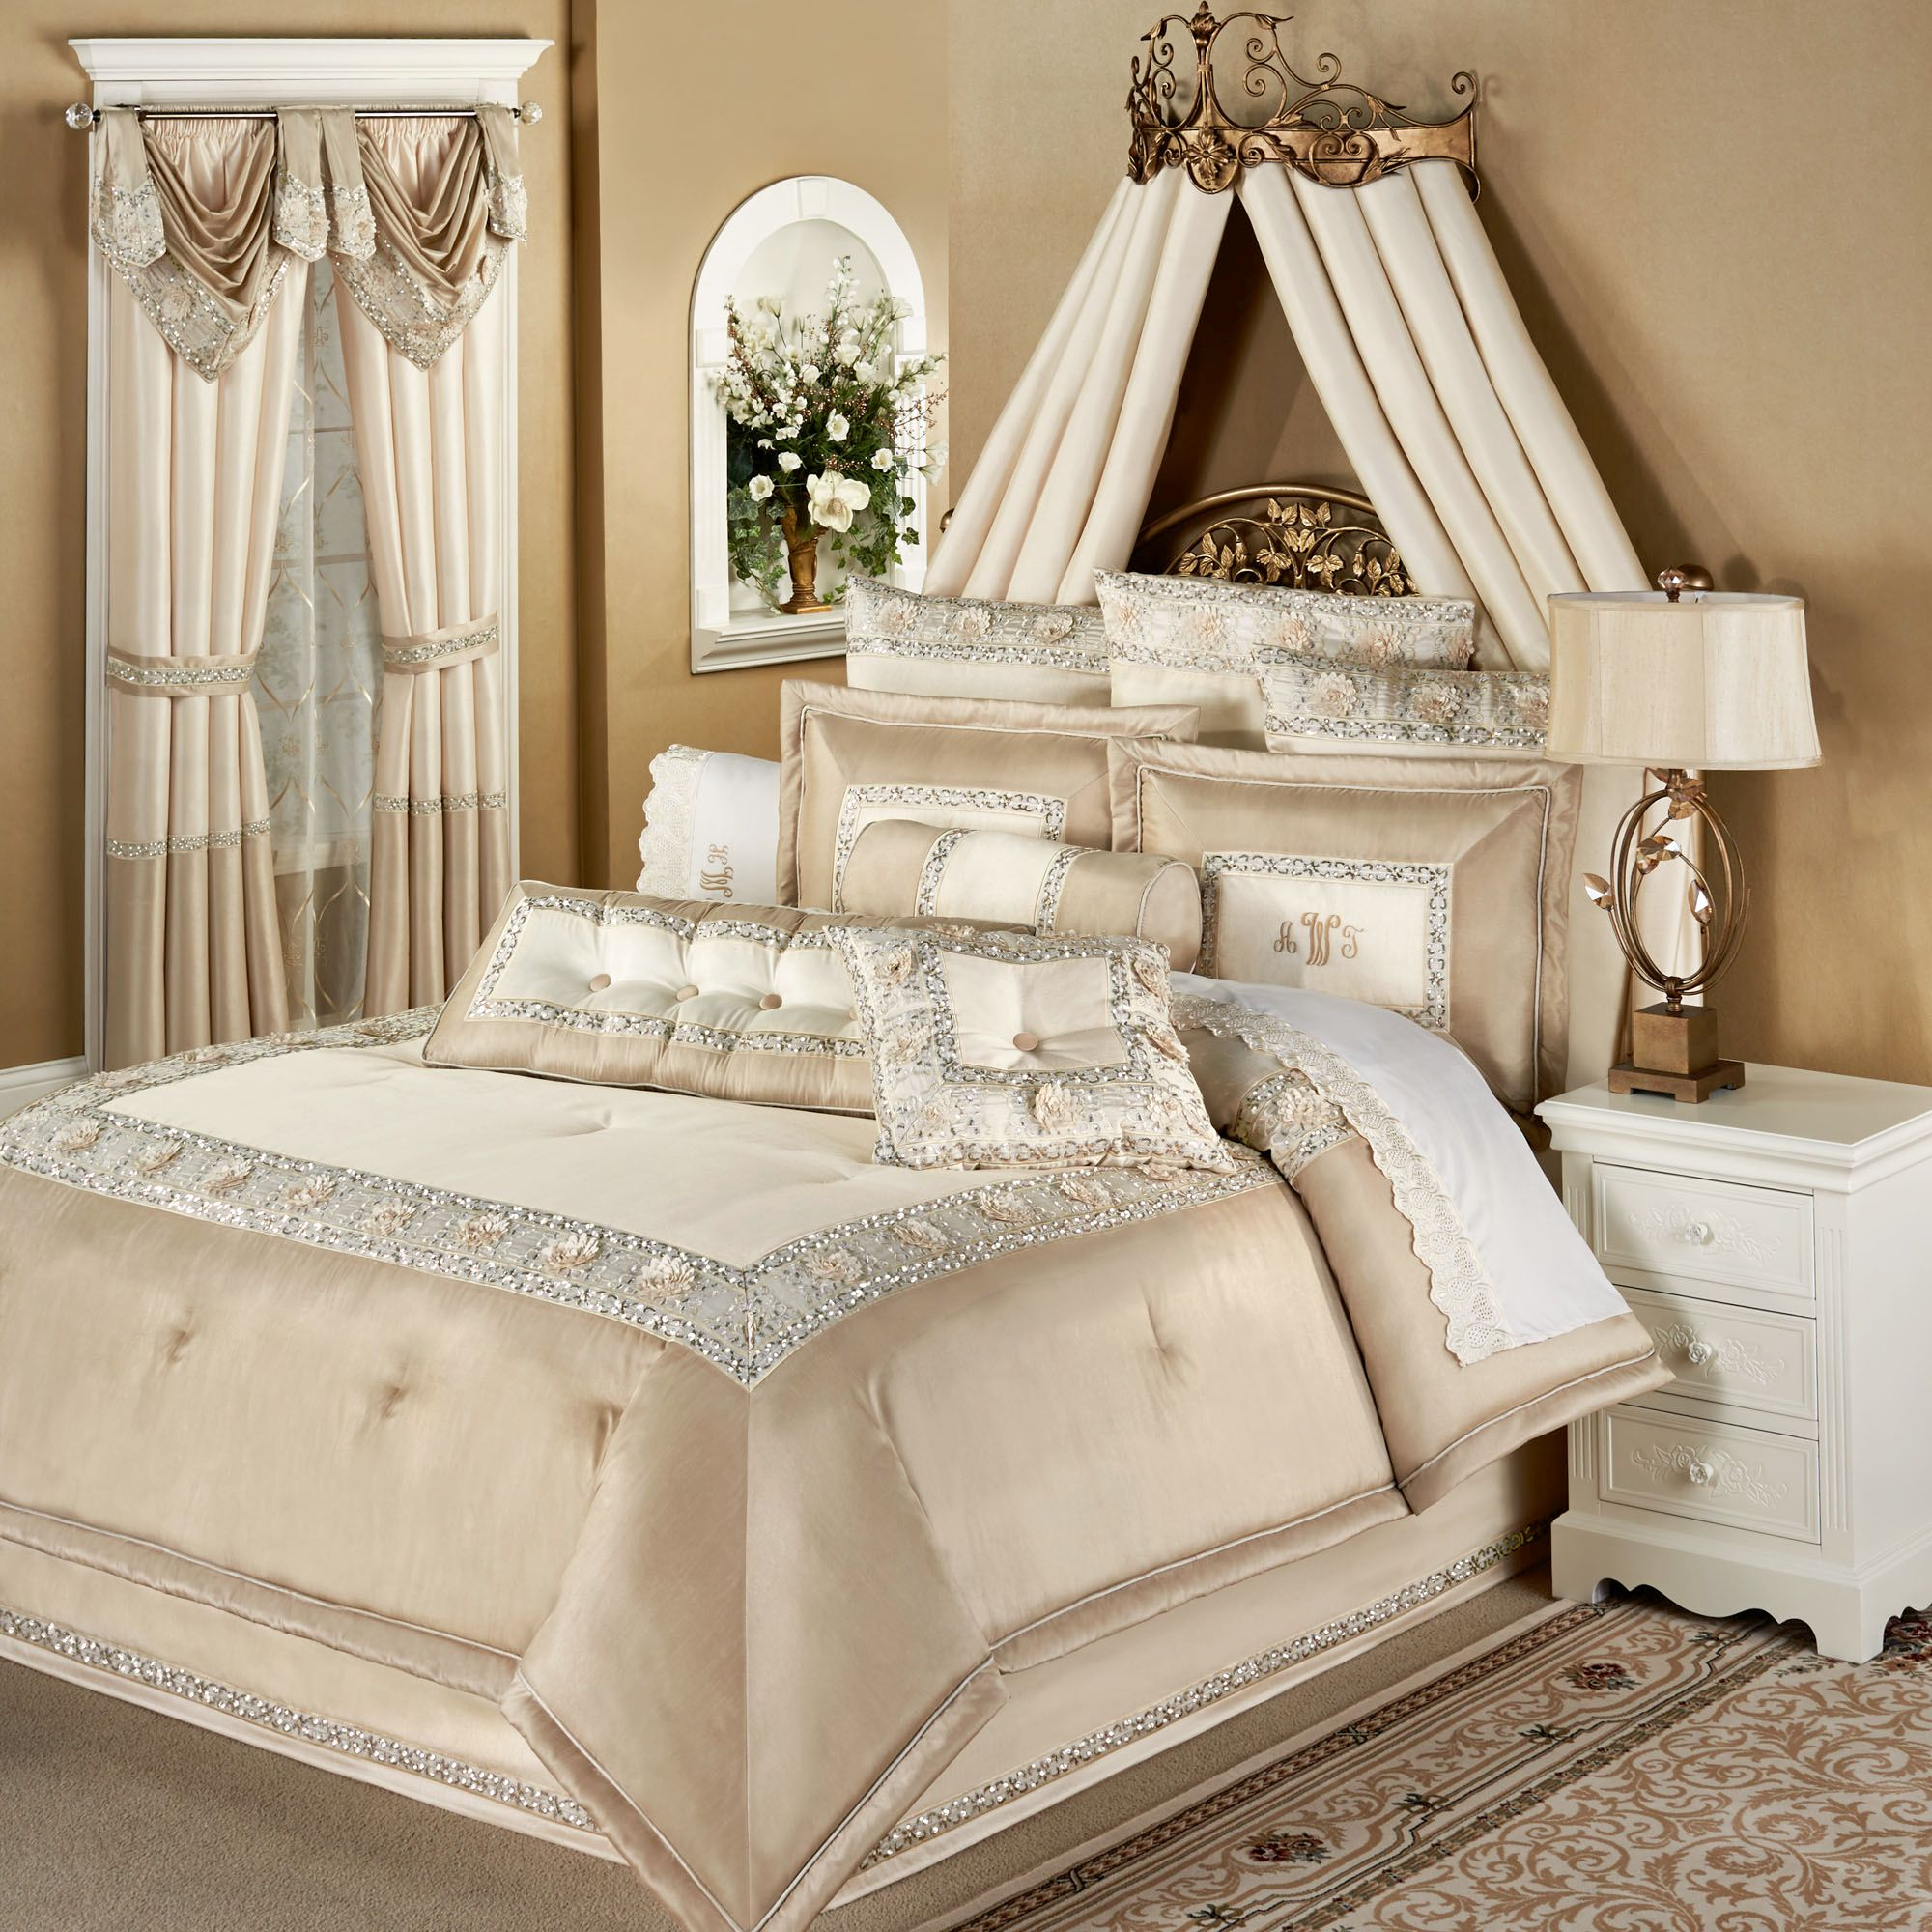 Gold Comforter Set | Twin Bed Comforter Sets | Luxury Comforter Sets